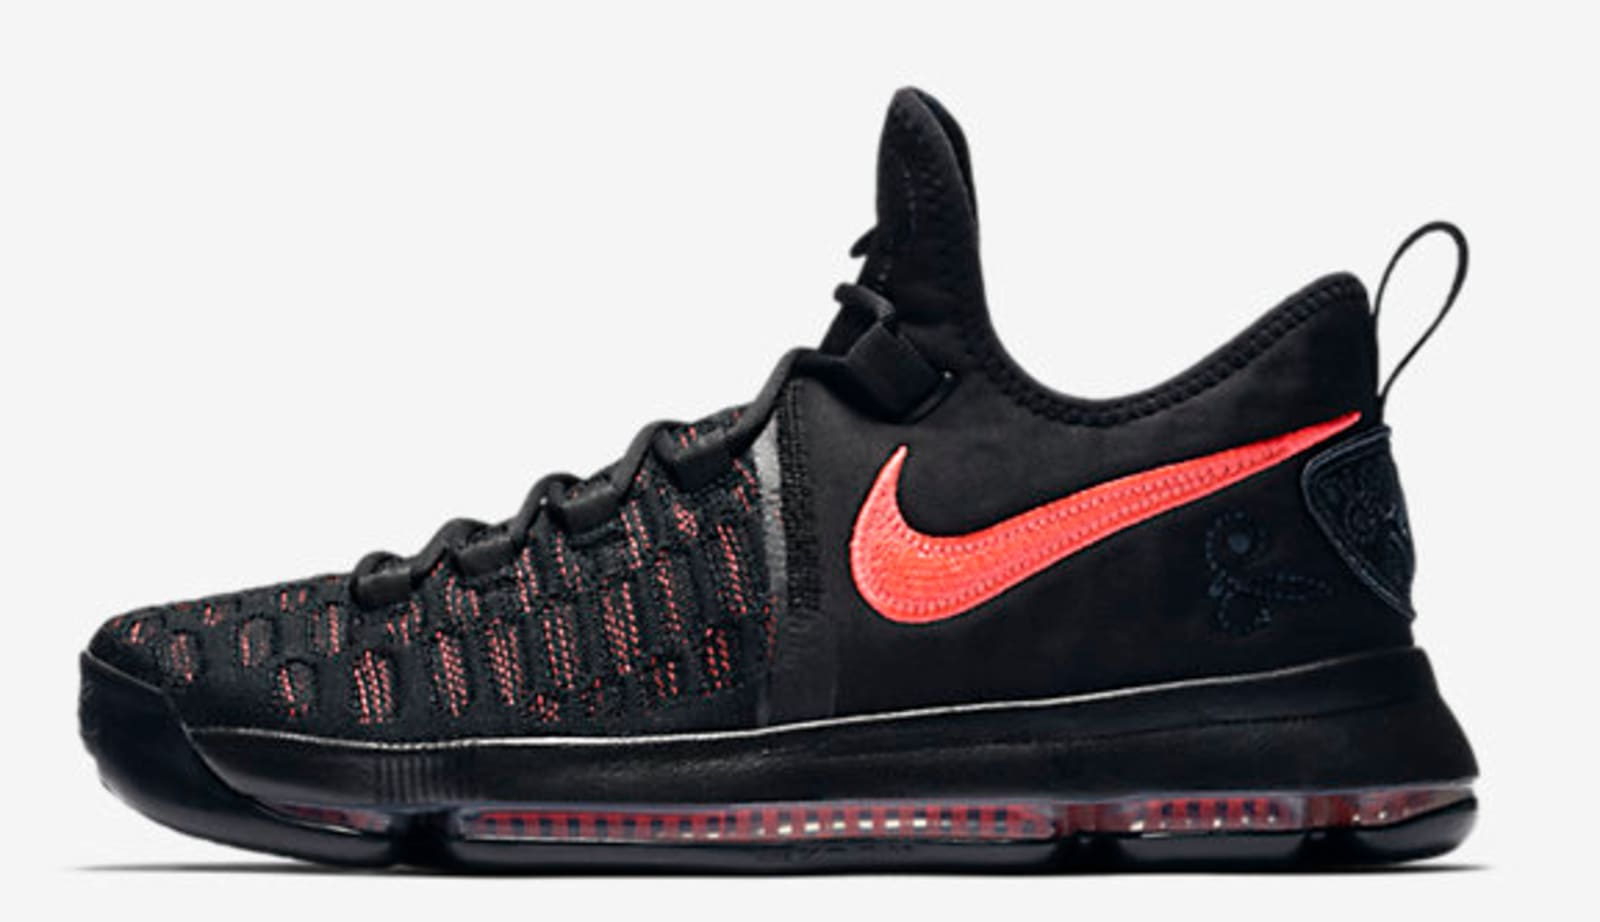 bfe95b564f Nike Air Force One Ultra Flyknit - Sneaker Sales 4/1/17 | Sole Collector